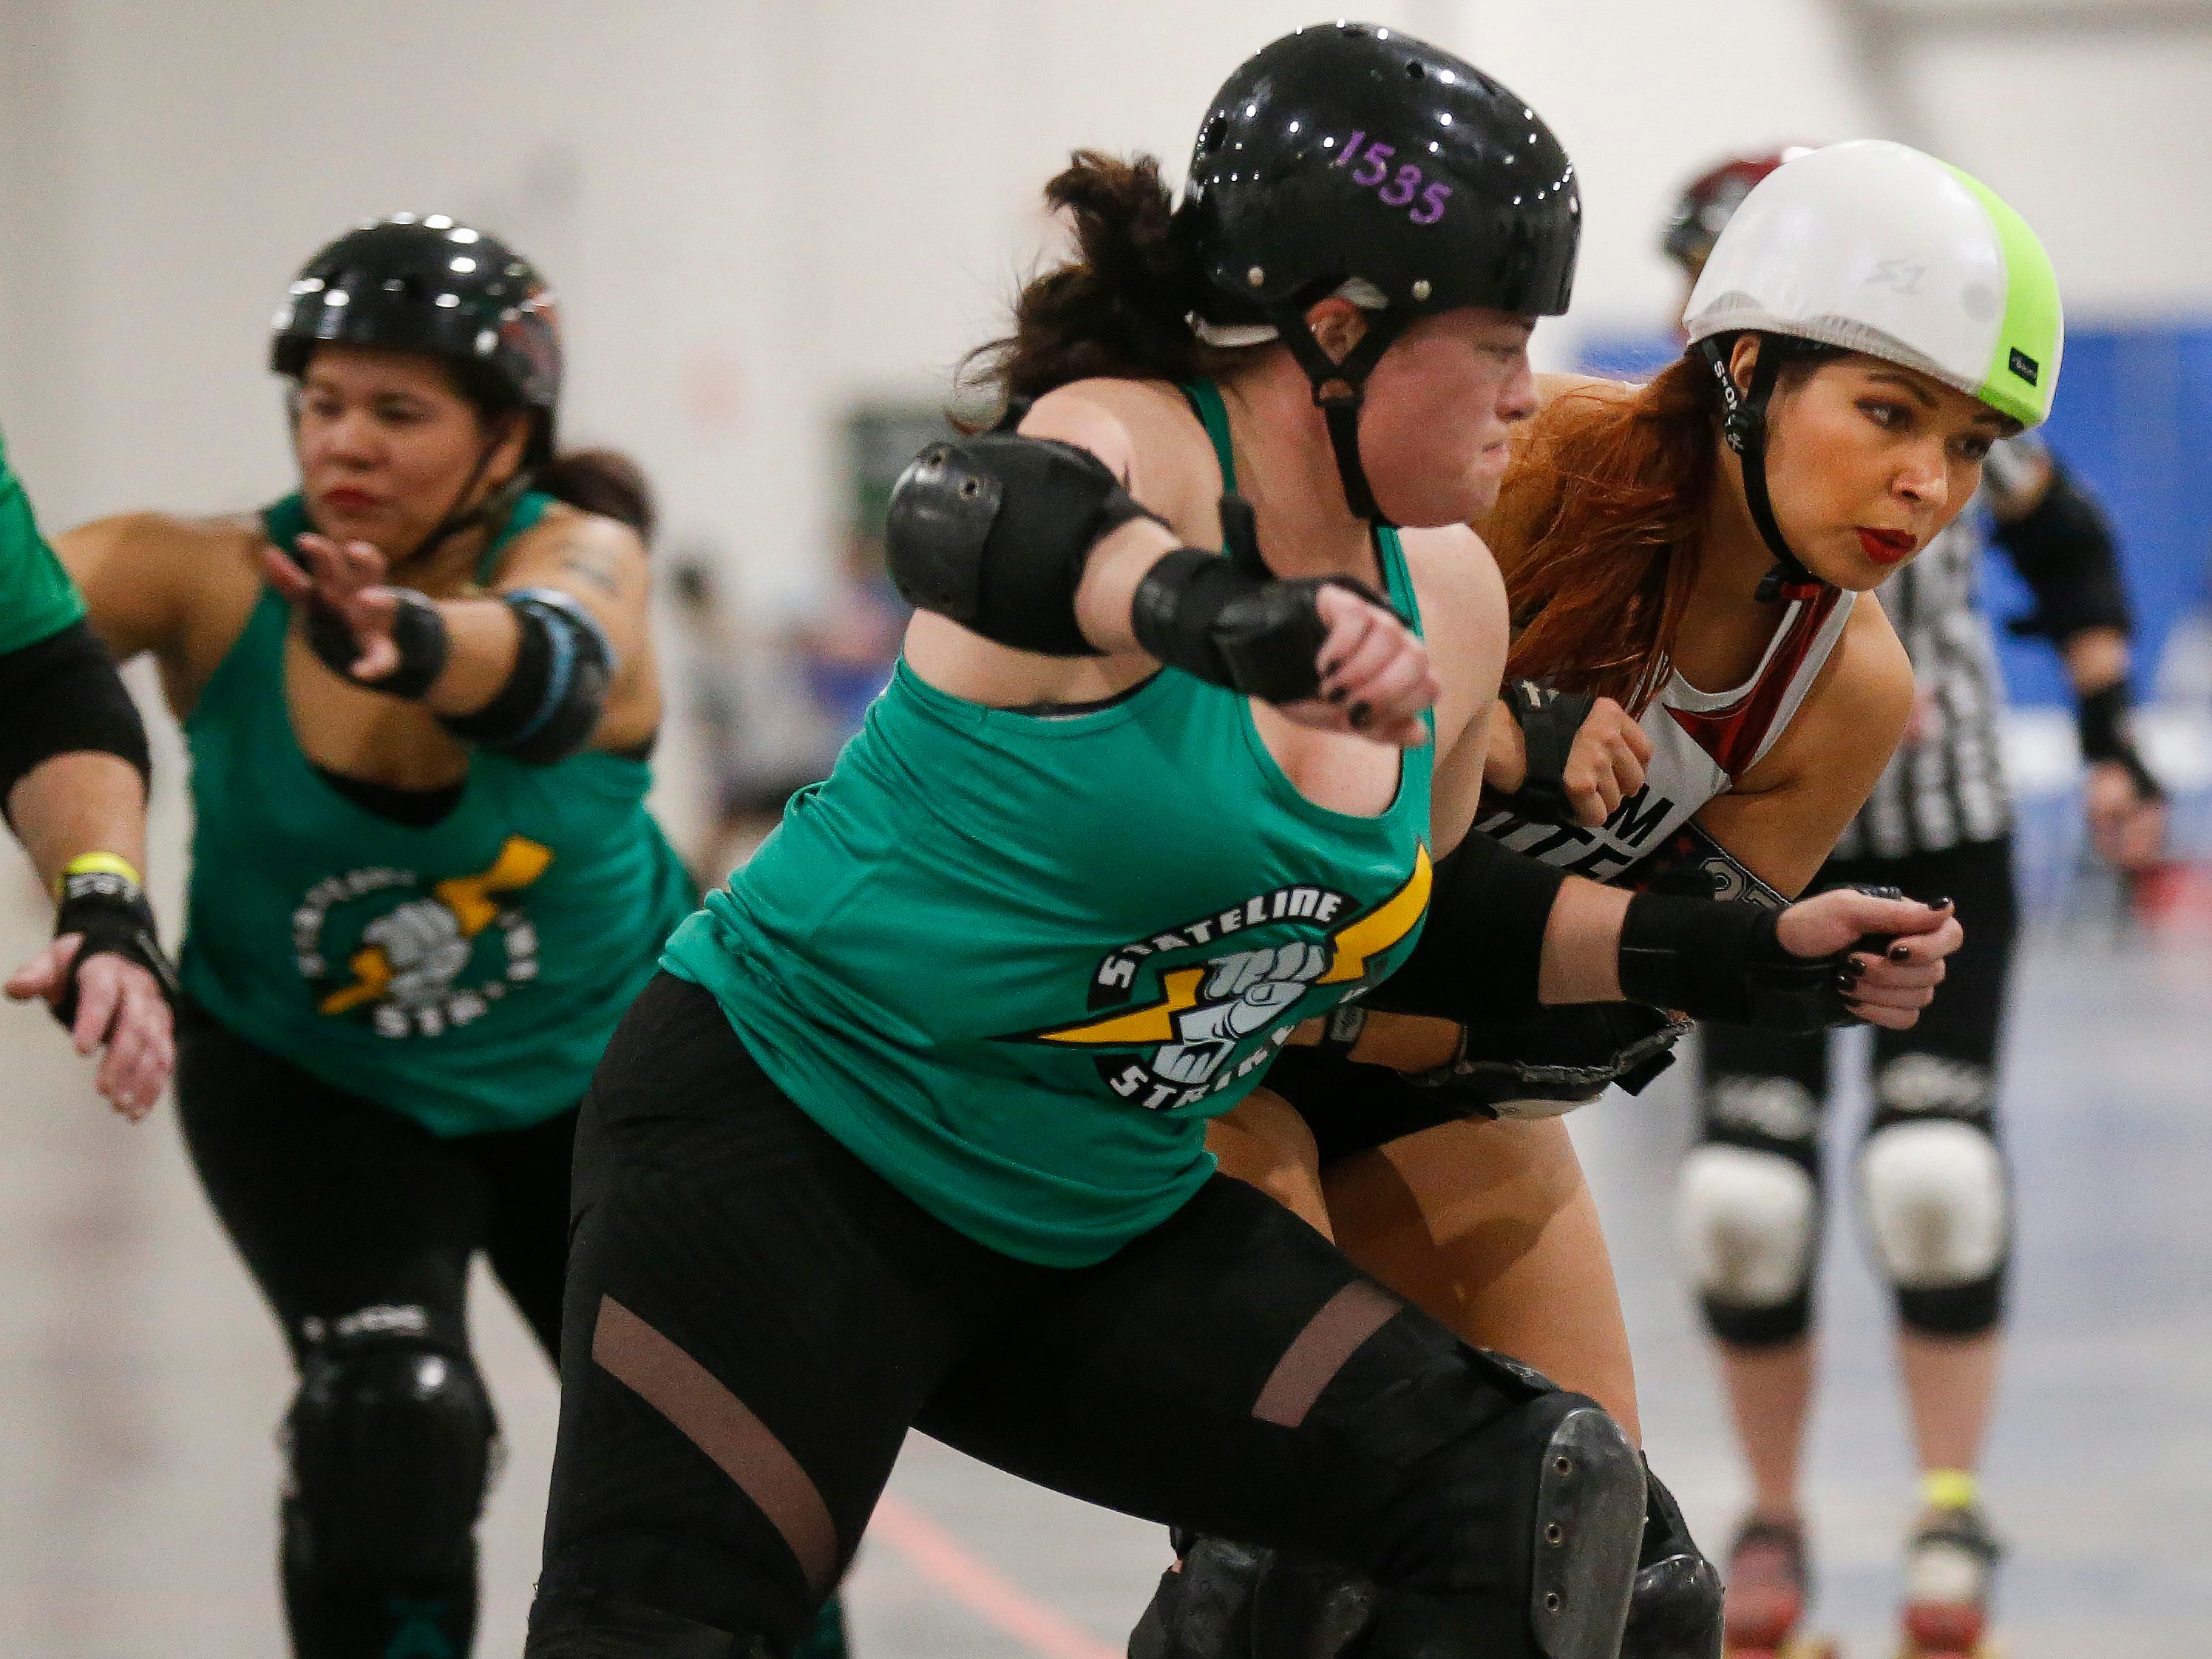 The Shockers (in white tops) defeated the Strikers 140-43 in the first game of the 2019 Roller Derby M.A.D.E. Nationals at the Ozark Empire Fairgrounds on Saturday, Feb. 2, 2019.